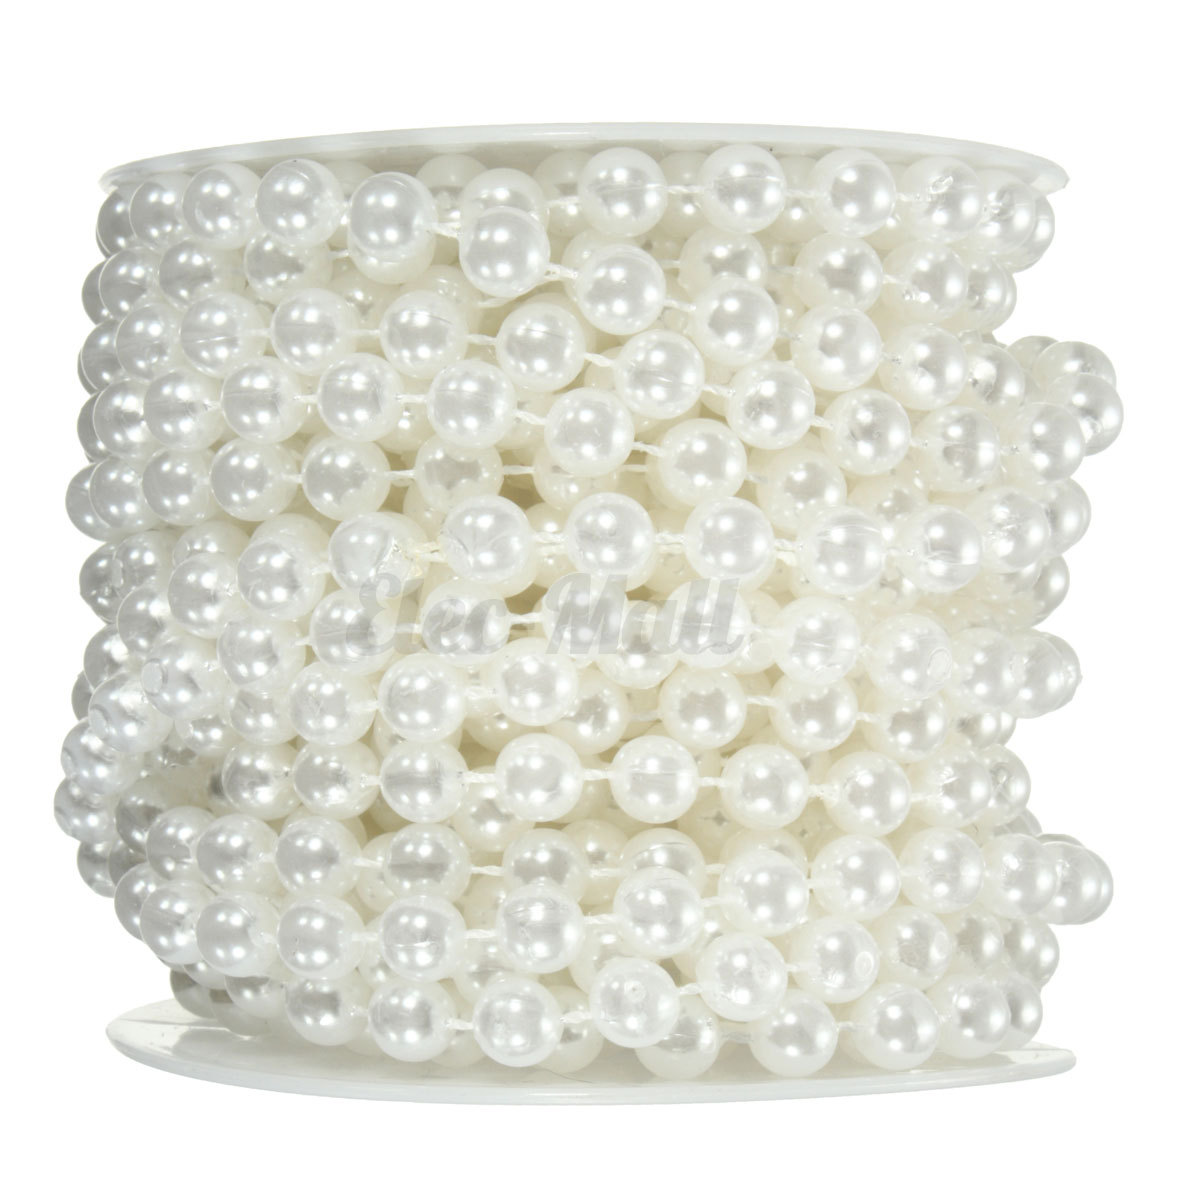 10M 8mm Ivory Pearl Beads Garland Chain String Wedding